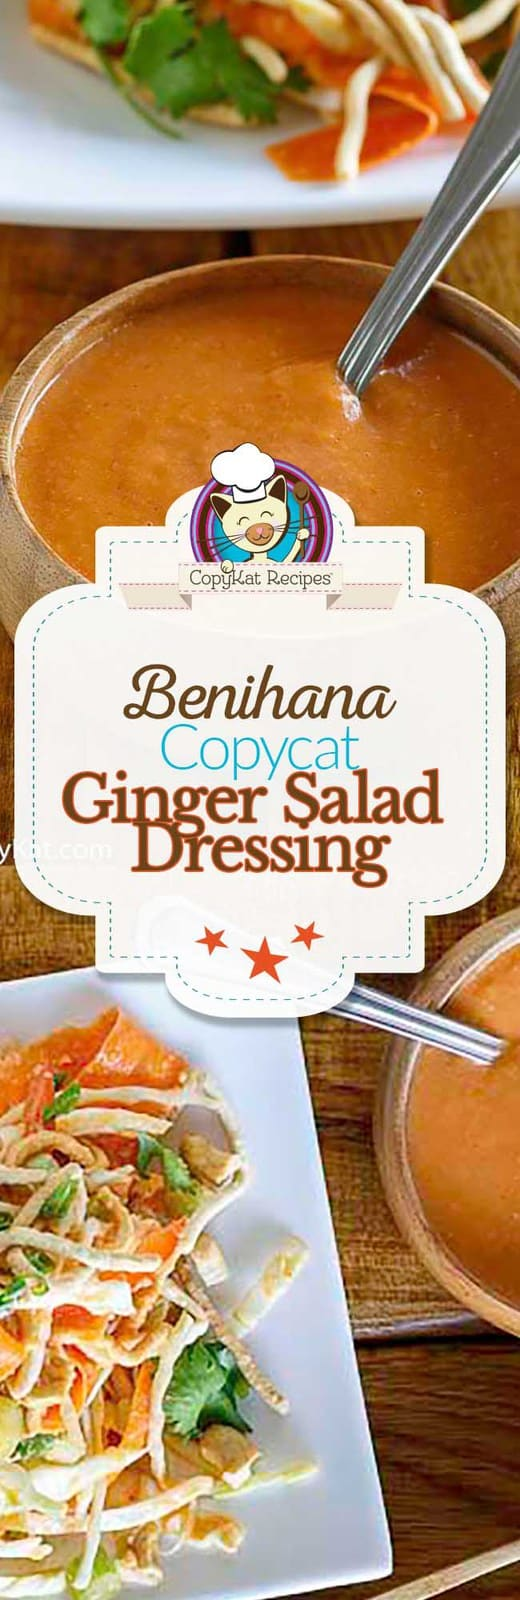 Love Benihana Ginger Salad dressing?  You can make it at home with this easy copycat recipe.   #benihana #ginger #saladdressing #salads